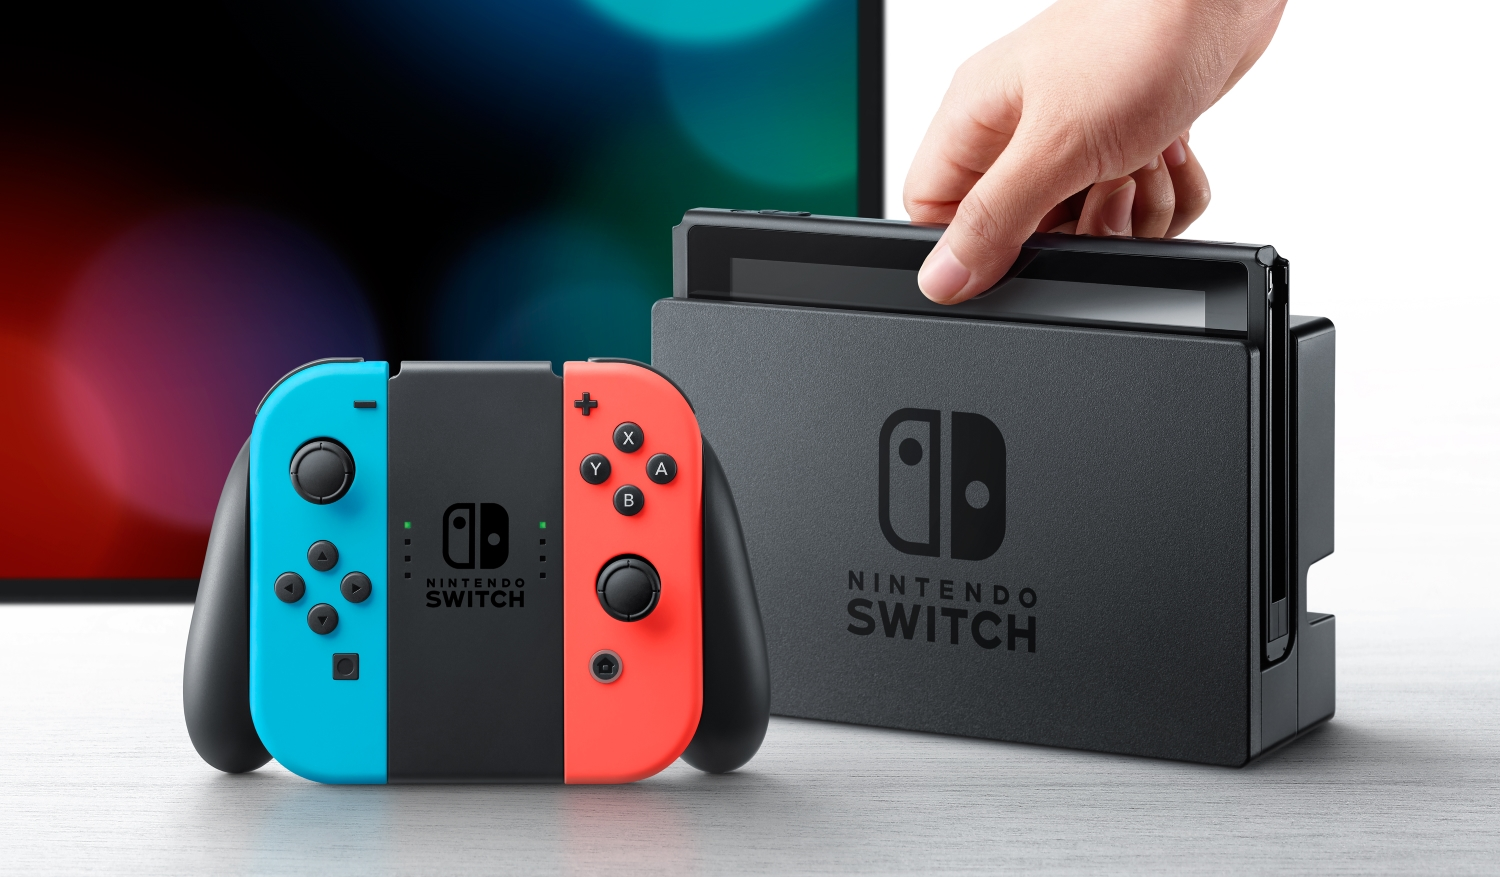 Cheaper Nintendo Switch model coming this autumn claims new report